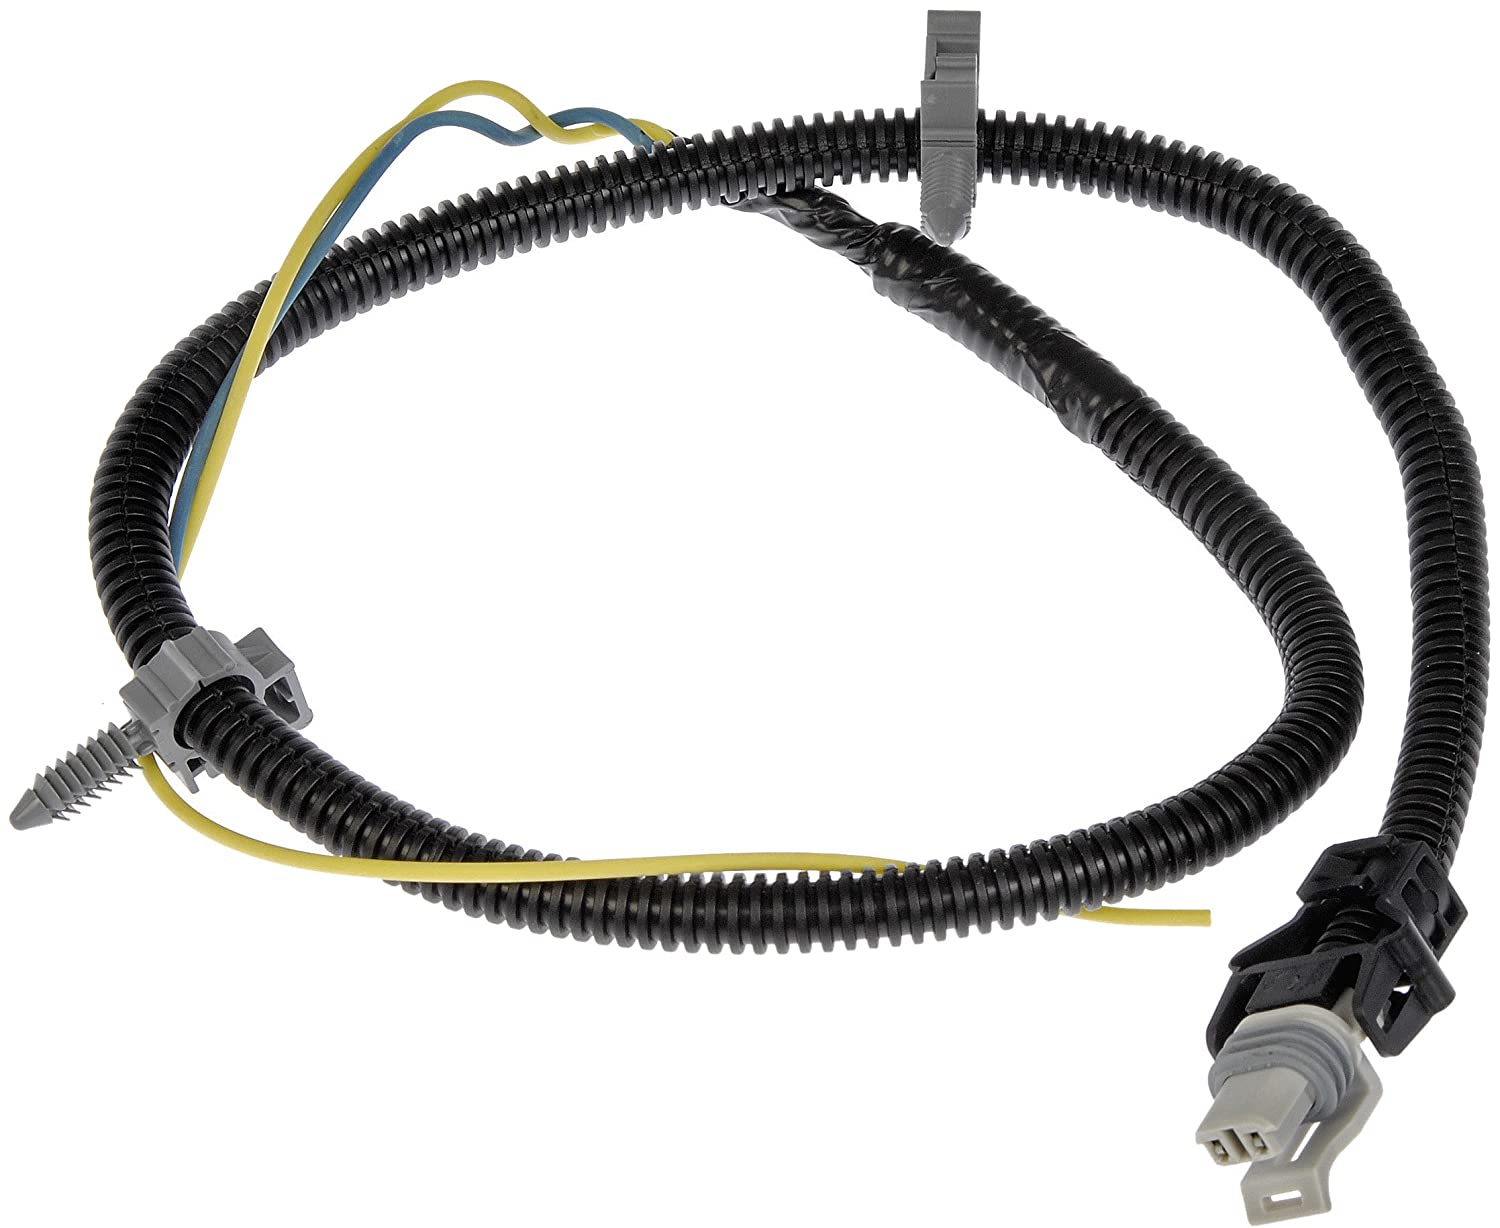 Abs Wiring Harness Great Design Of Diagram 2007 Nissan Frontier 11 Malibu 28 Images Jeep Liberty